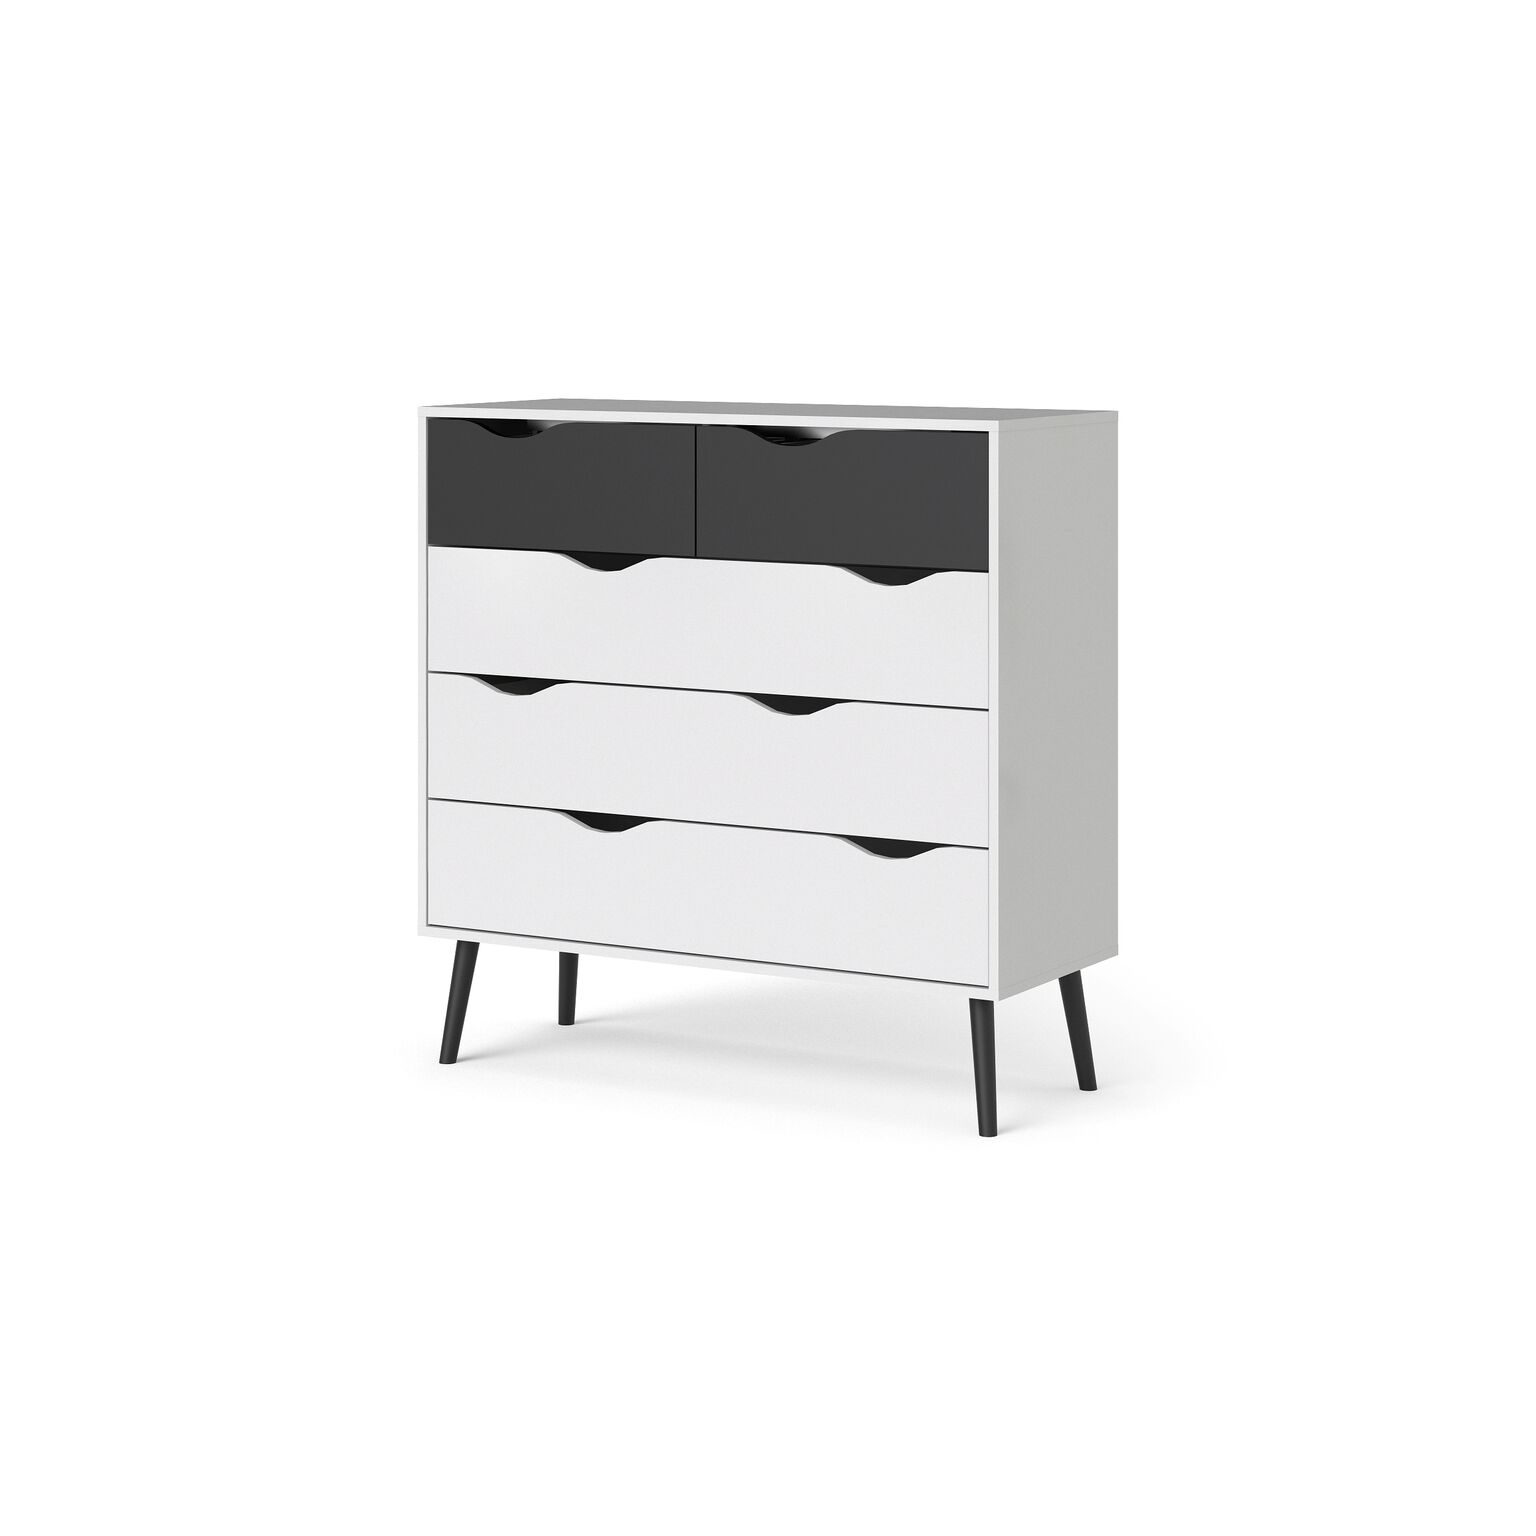 kommode napoli sideboard anrichte schrank highboard schwarz wei ebay. Black Bedroom Furniture Sets. Home Design Ideas